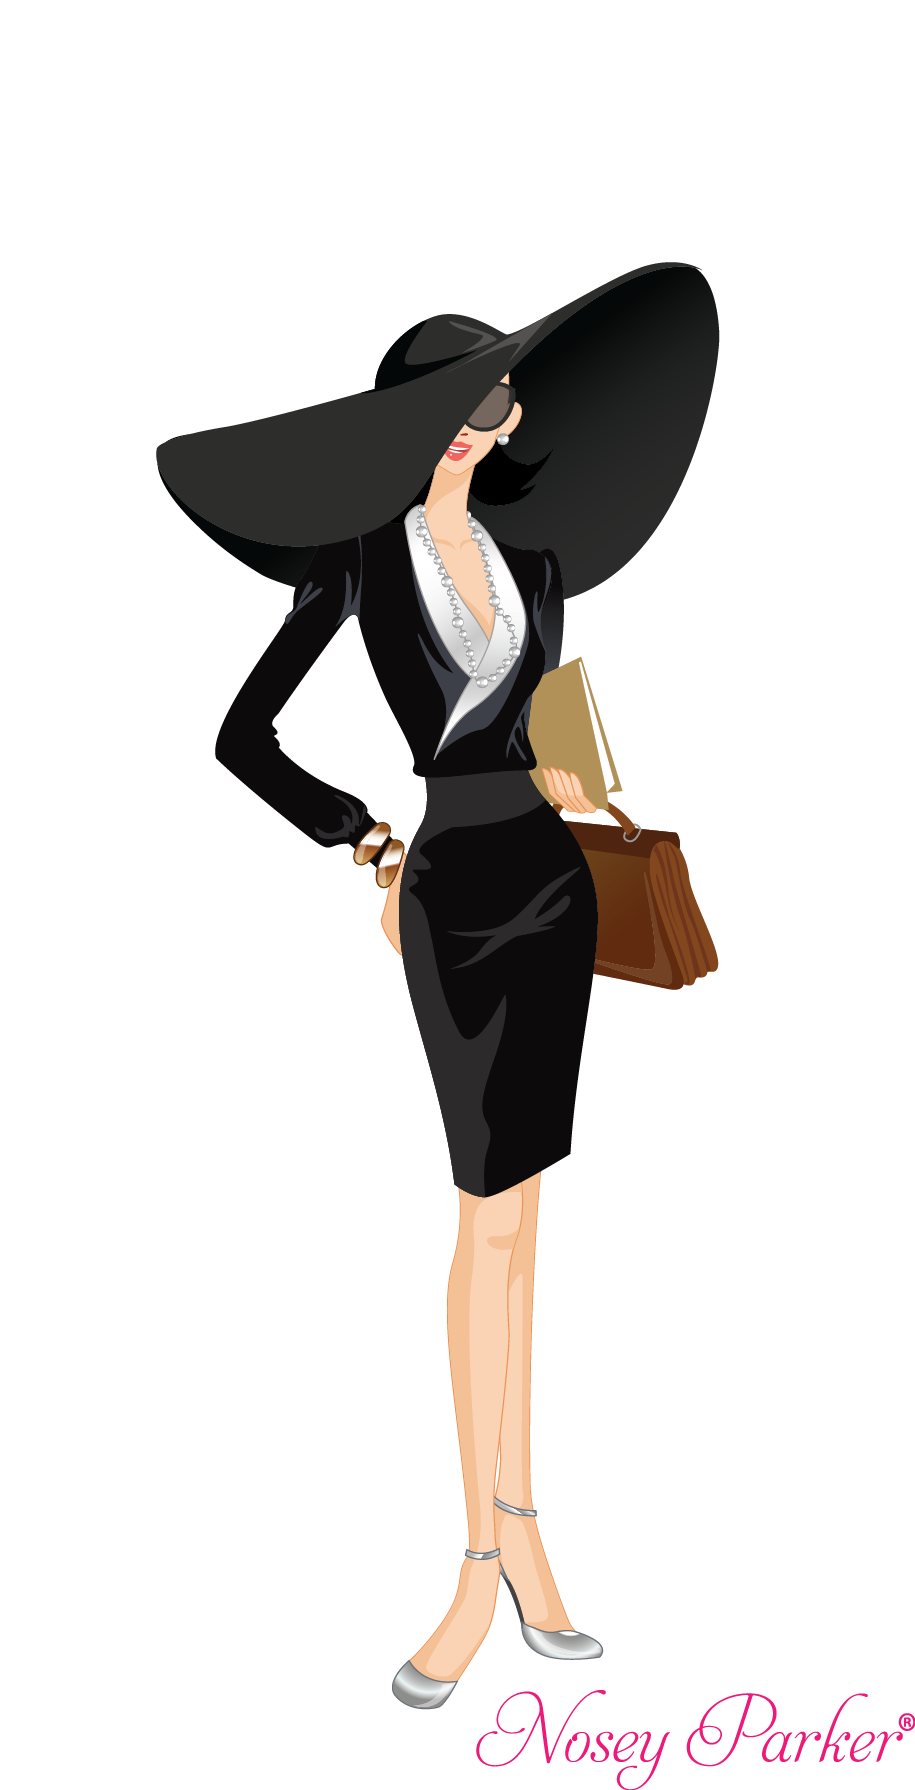 Pocket clipart clothes shopping. Nosey parker business woman